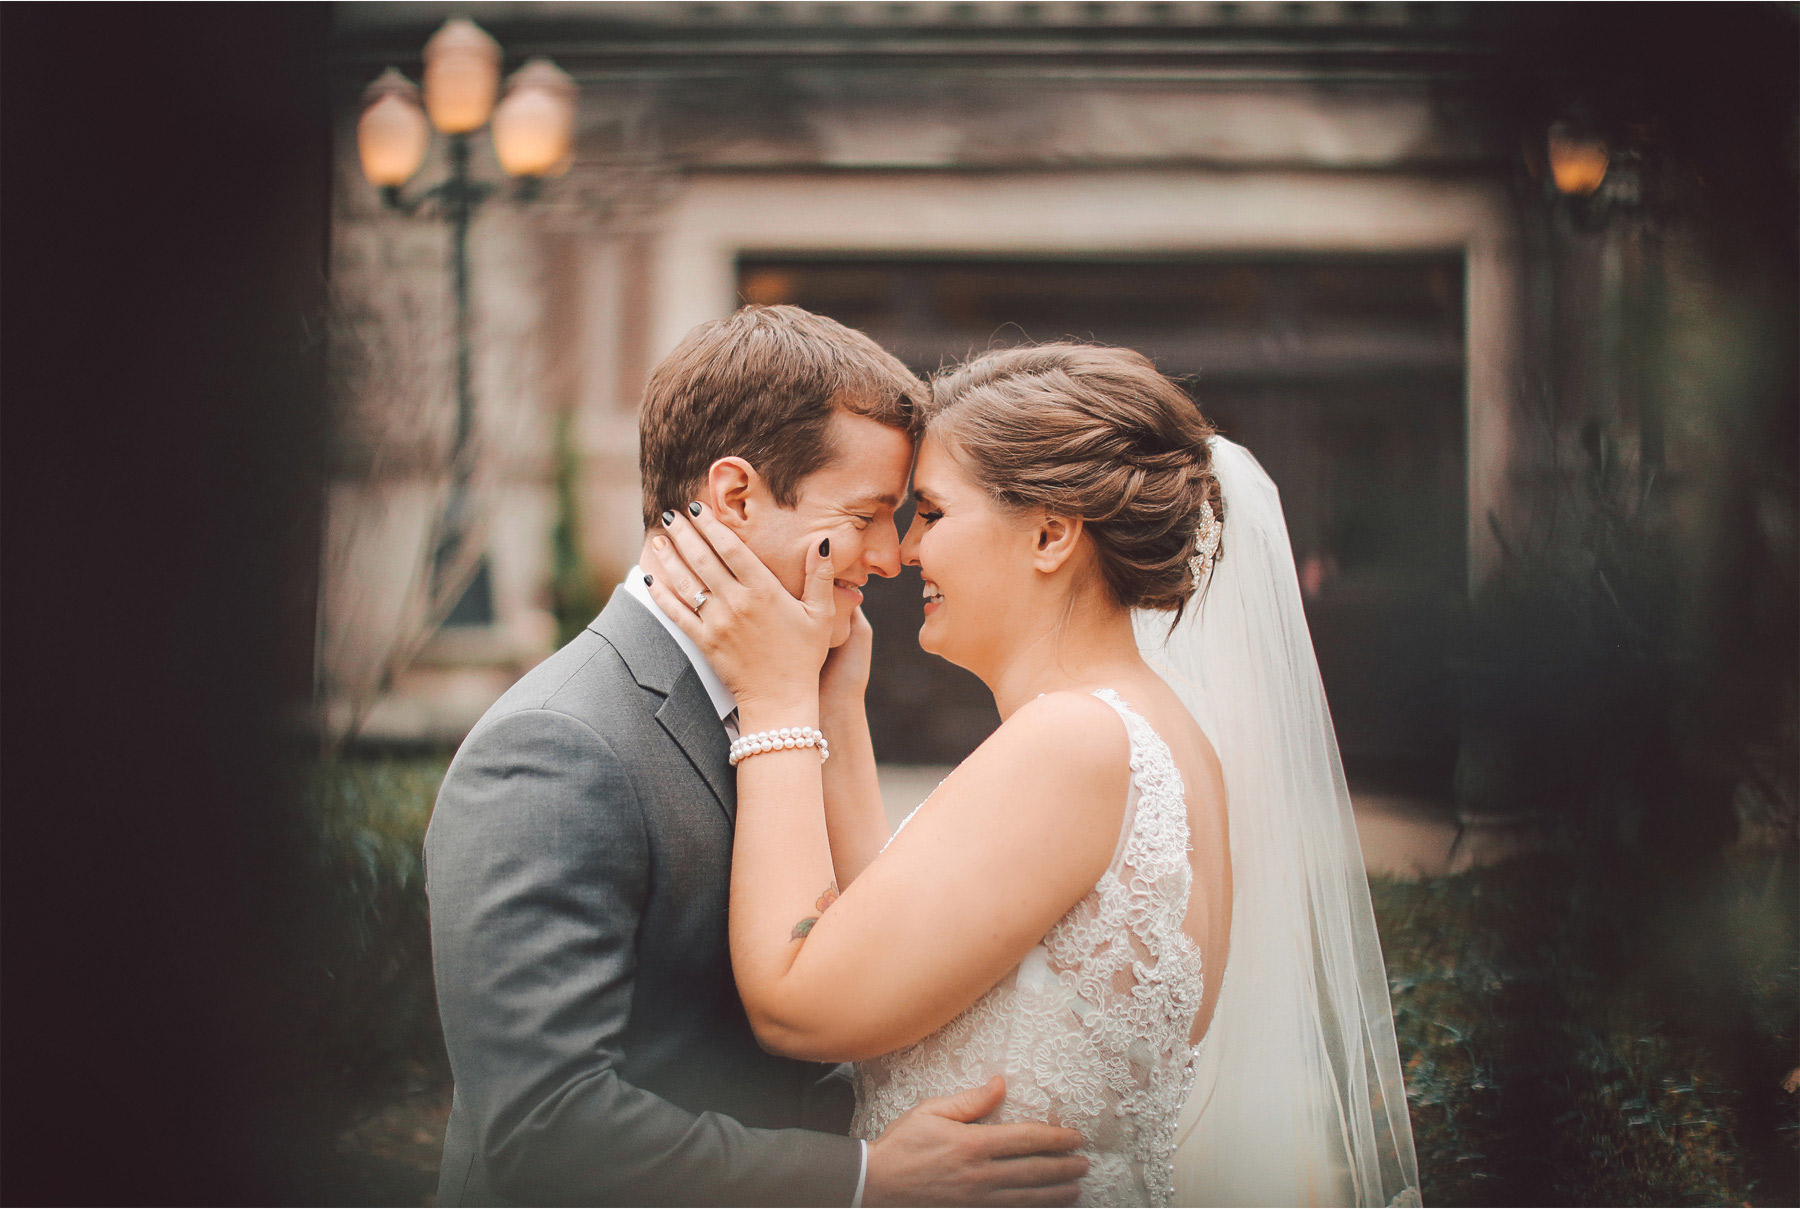 08-Chicago-Illinois-Wedding-Photographer-by-Andrew-Vick-Photography-Winter-Stan-Mansion-First-Meeting-Look-Bride-Groom-Hugs-Embrace-Vintage-Colleen-and-Mike.jpg